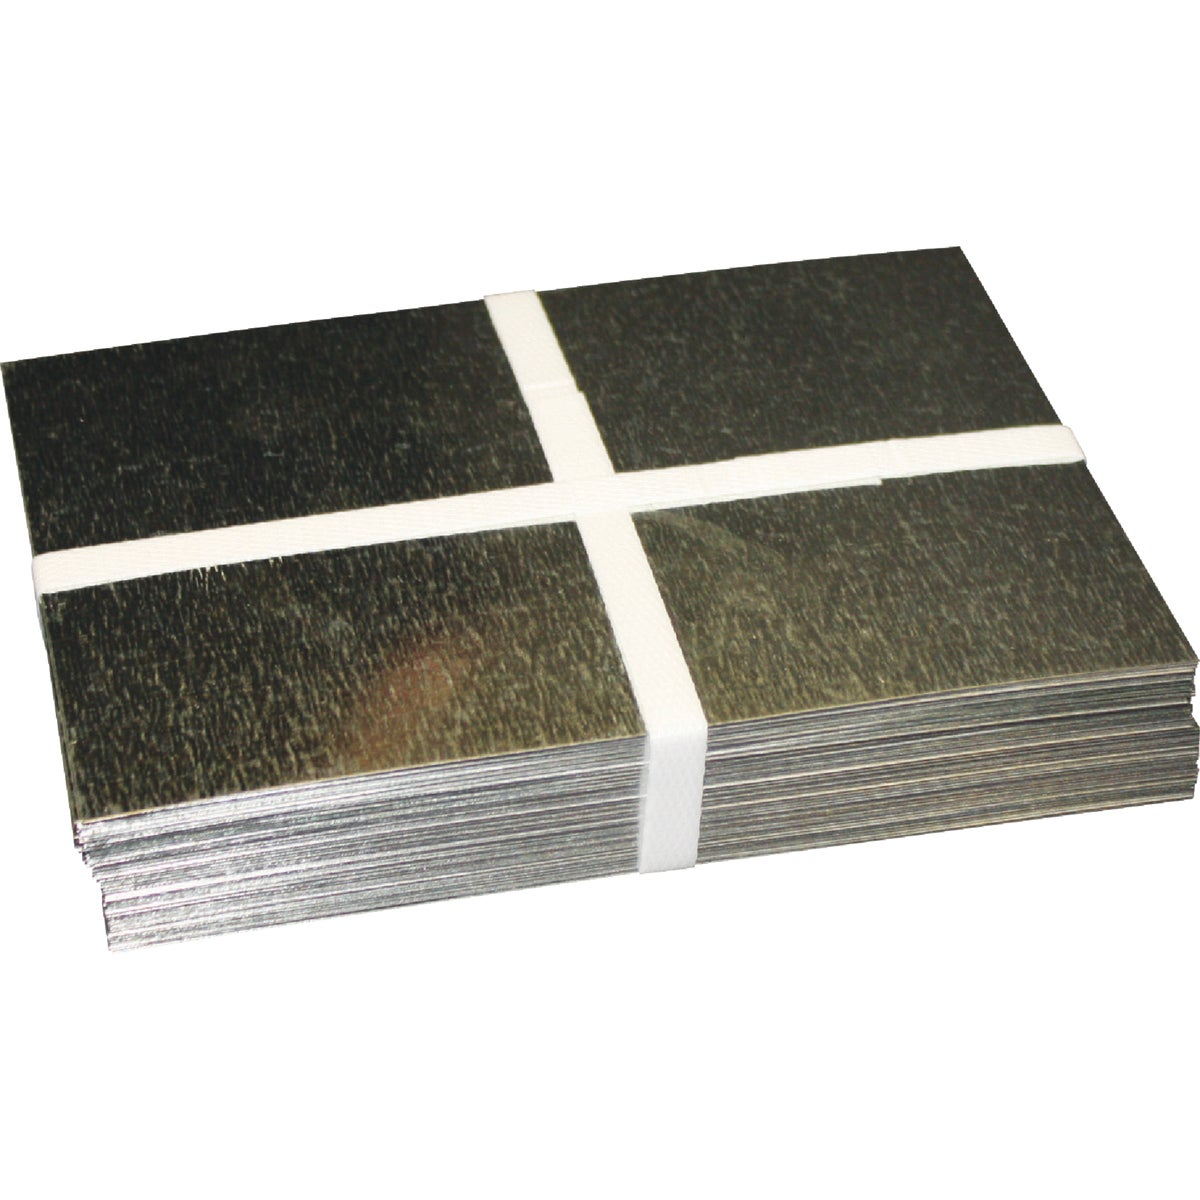 "5""X7"" TT FLSHING SHINGLE - 31410-TT60 by Klauer Mfg Co"